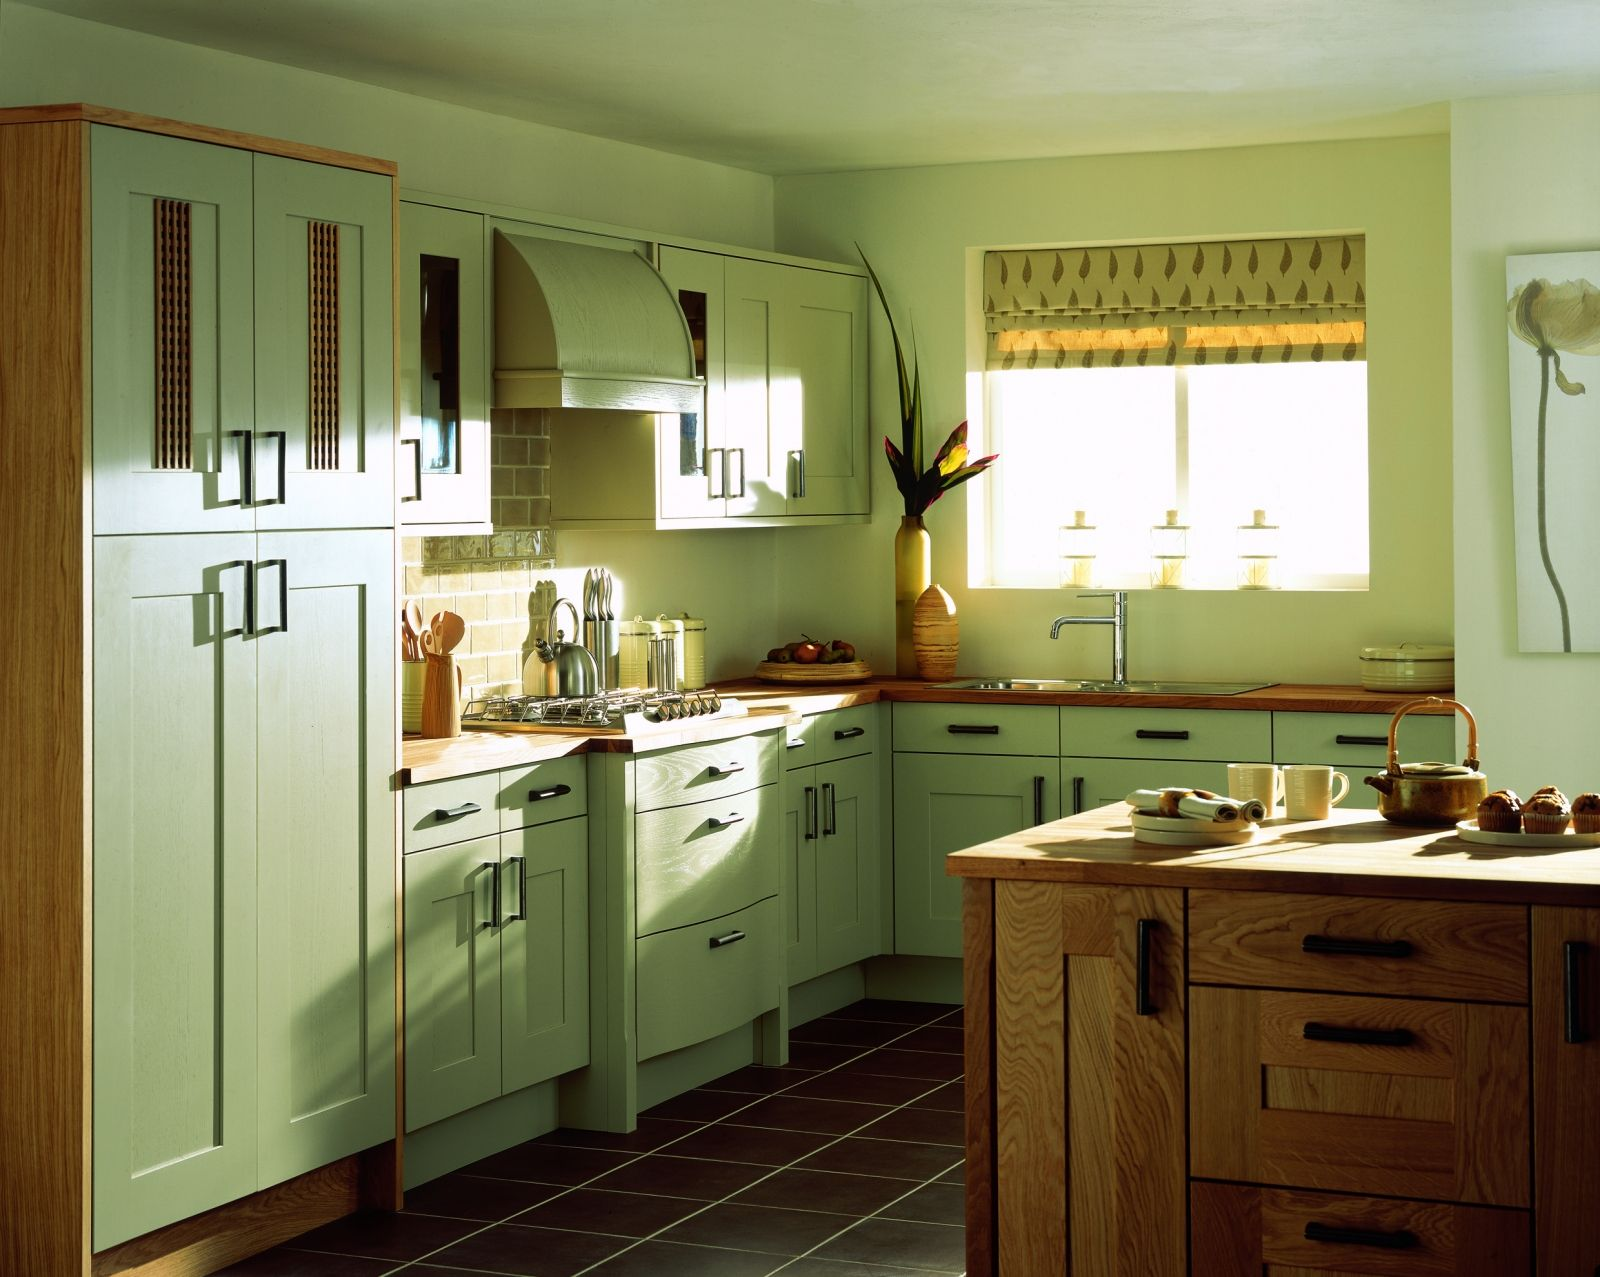 Painted kitchen cabinets two colors - Kitchen Amazing Green Painted Kitchen Wall Panels With Wooden